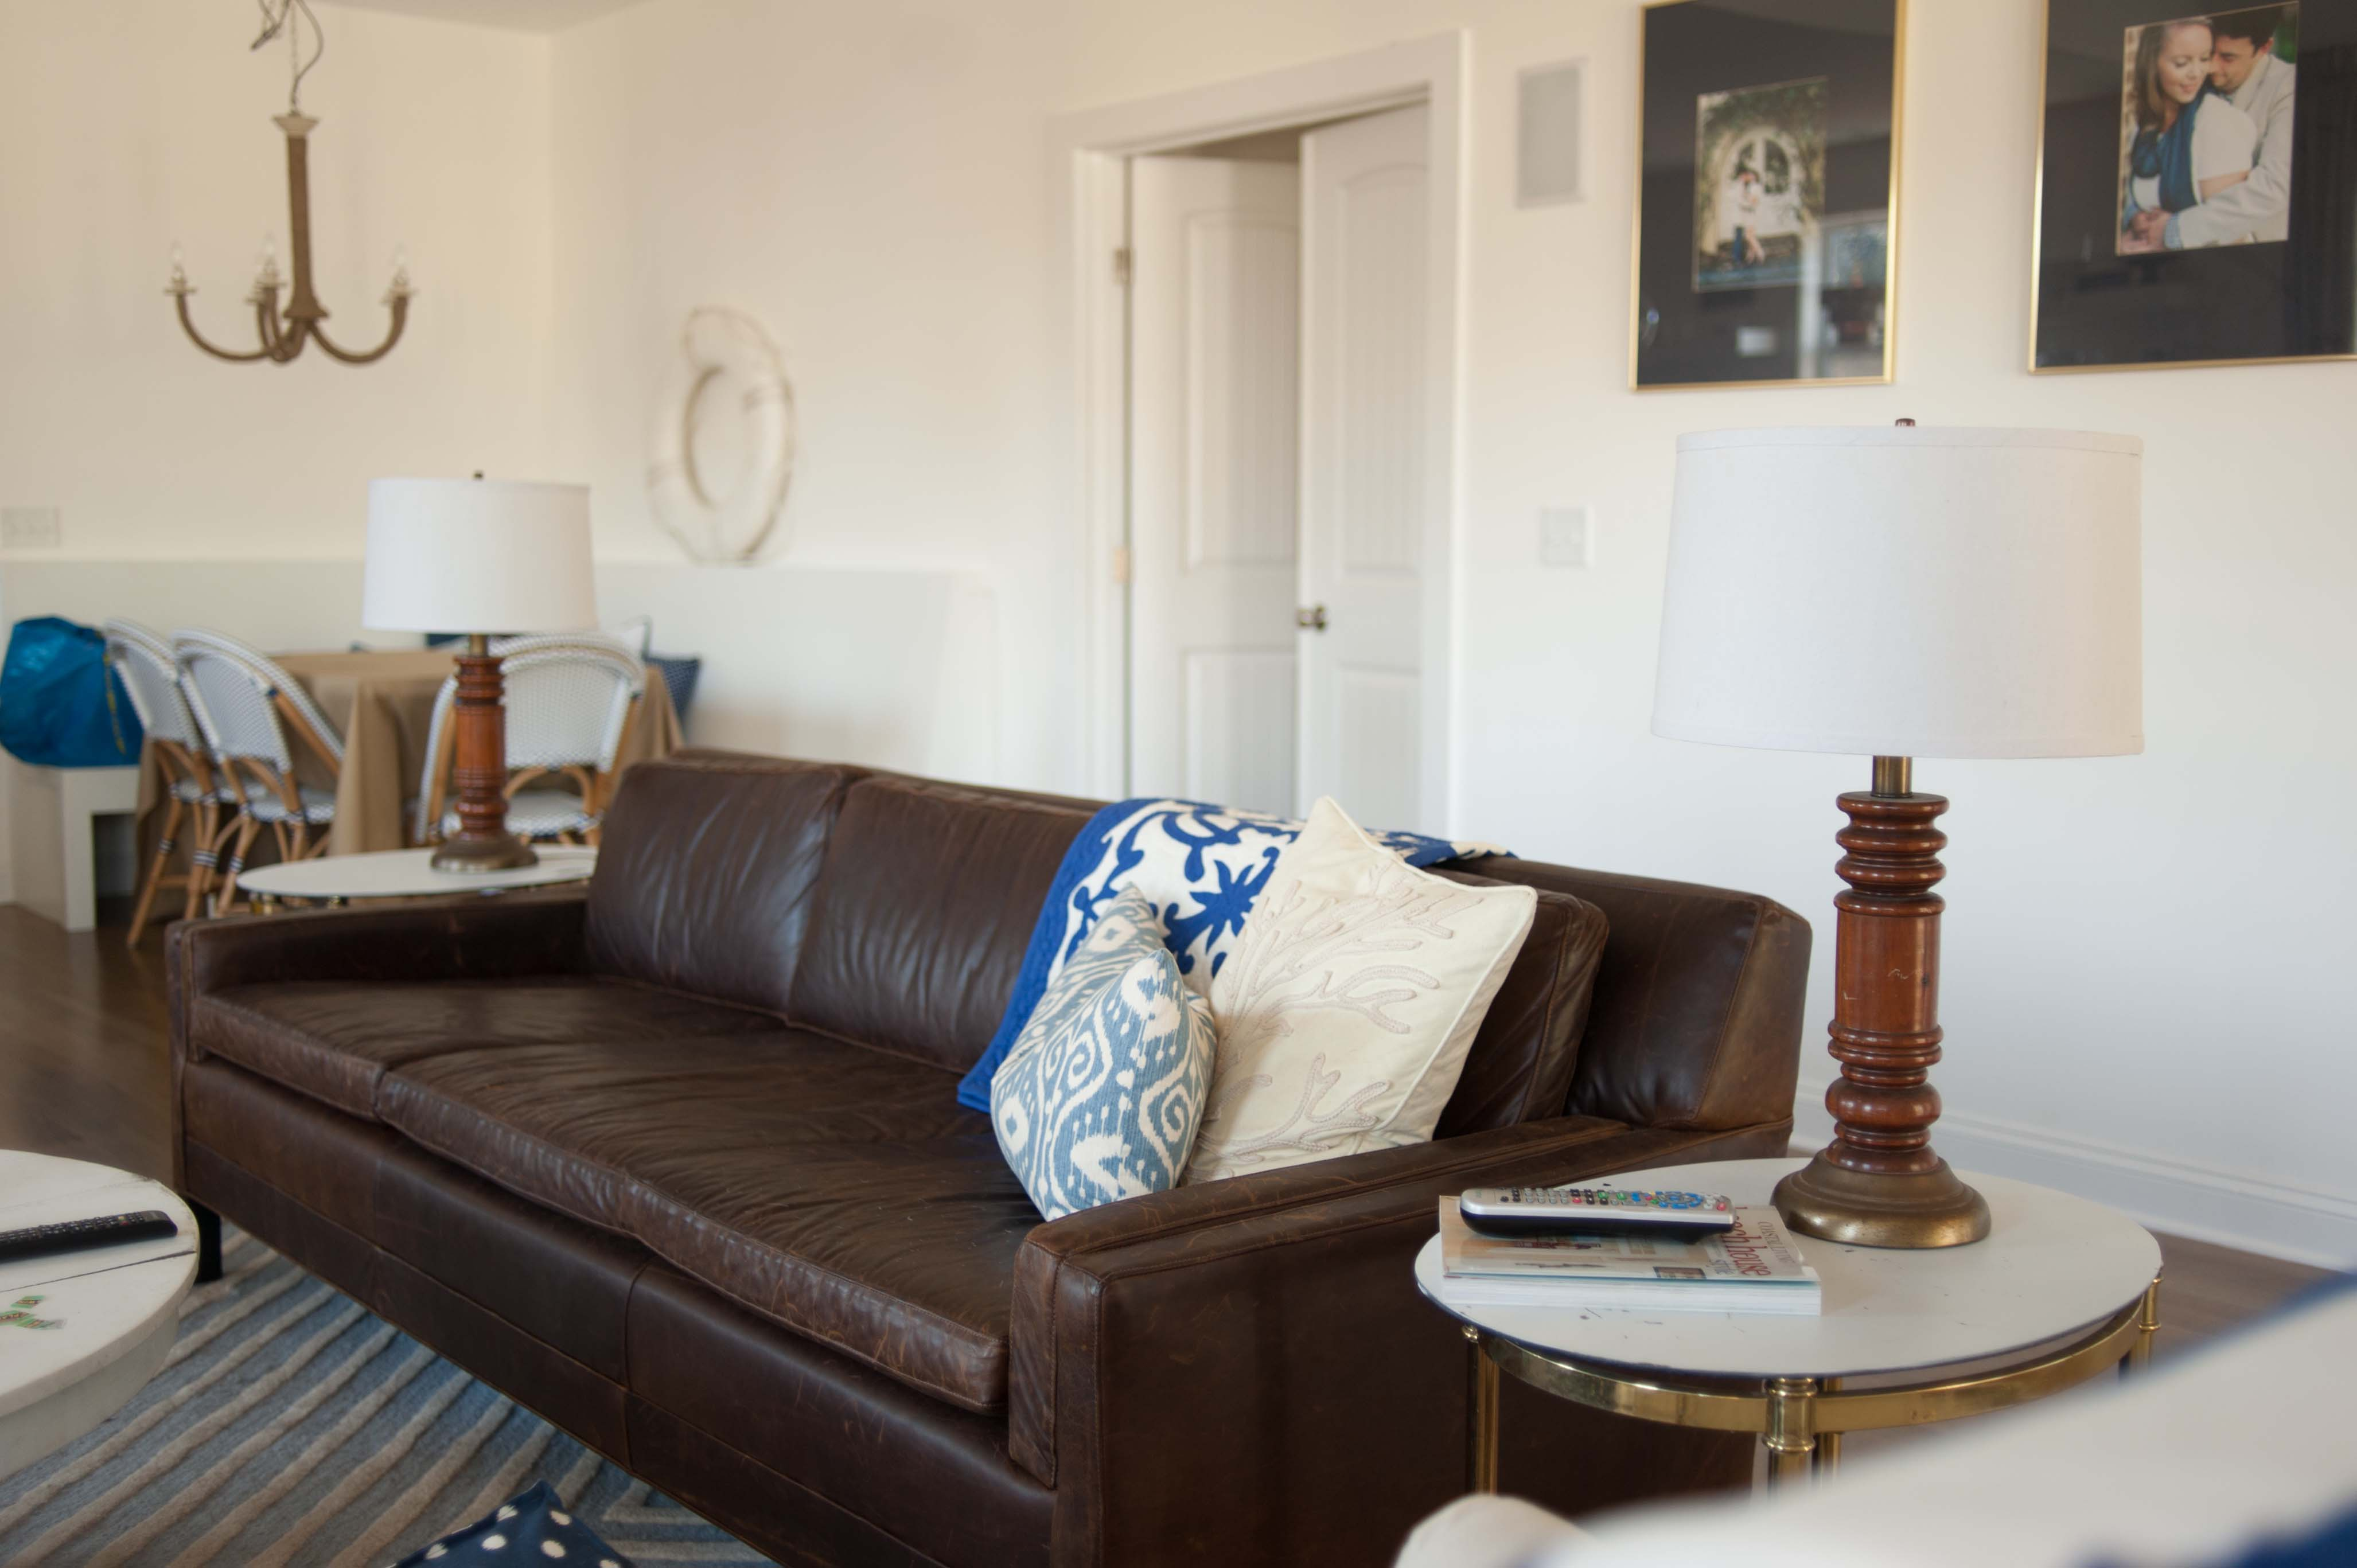 eastbourne set pickup east furniture donate sofa gallery couch and isenhour sussex hailsham lewes